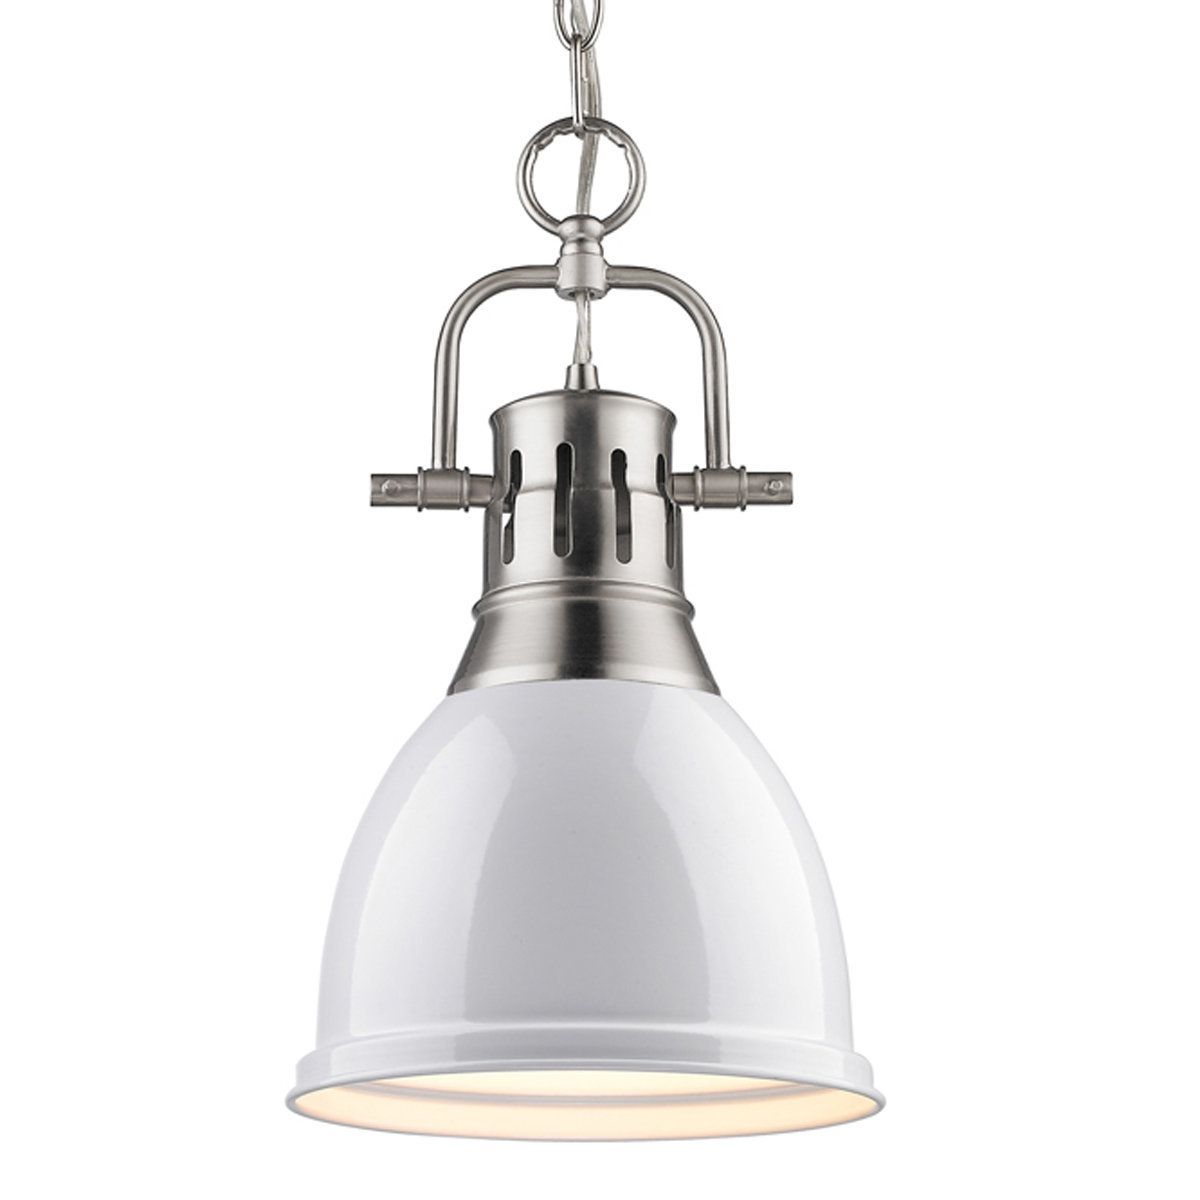 Classic Dome Shade Pendant Light With Chain Small White Pendant Light Small Pendant Lights Pendant Lighting